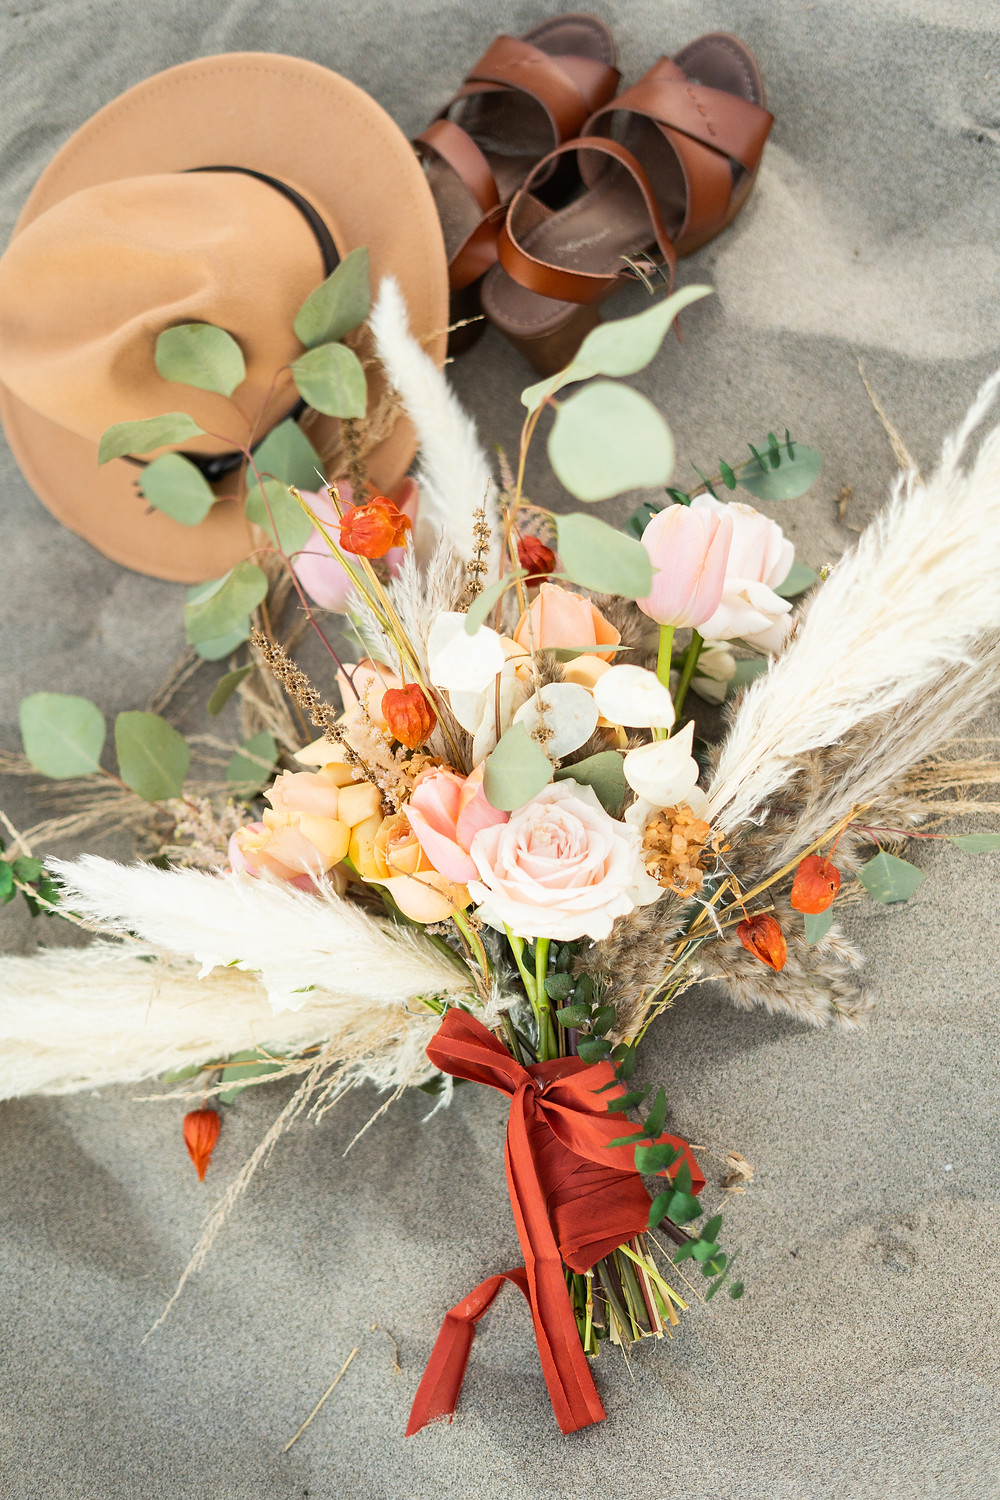 hat, shoes, and pampass grass bouquet in the sand on the beach for an elopement